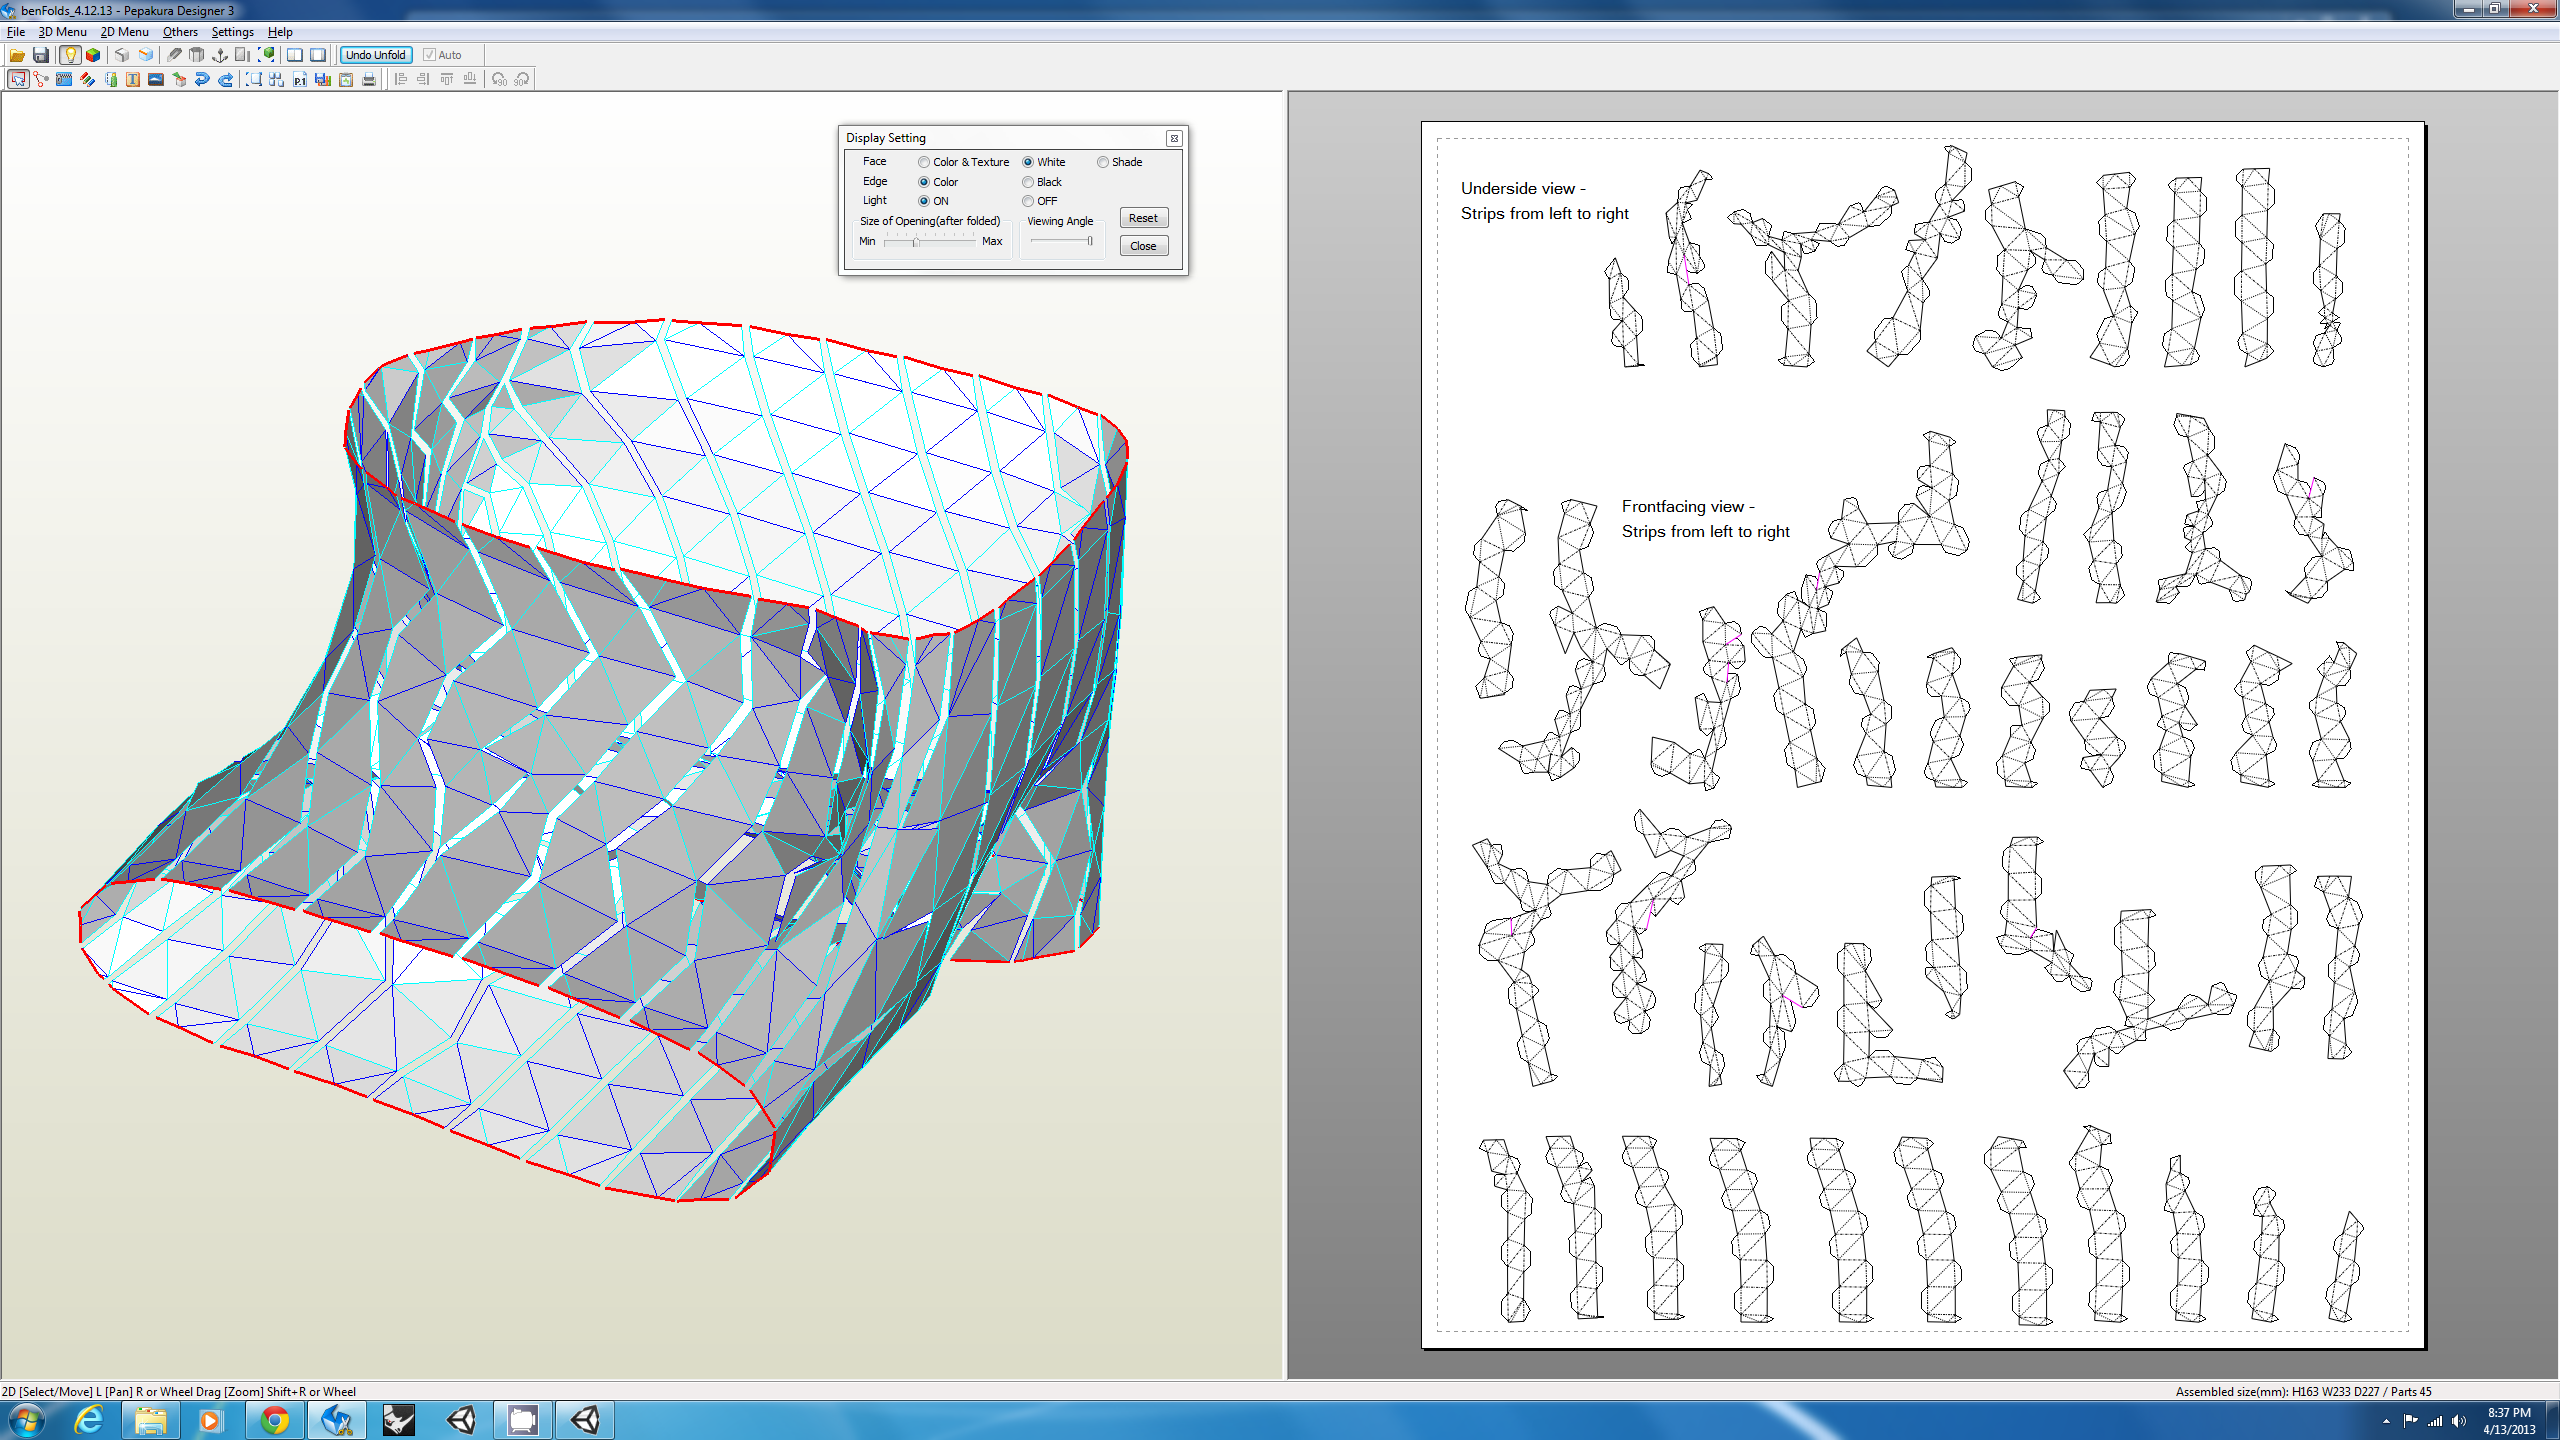 Fabricating a Parametric Model with Pepakura